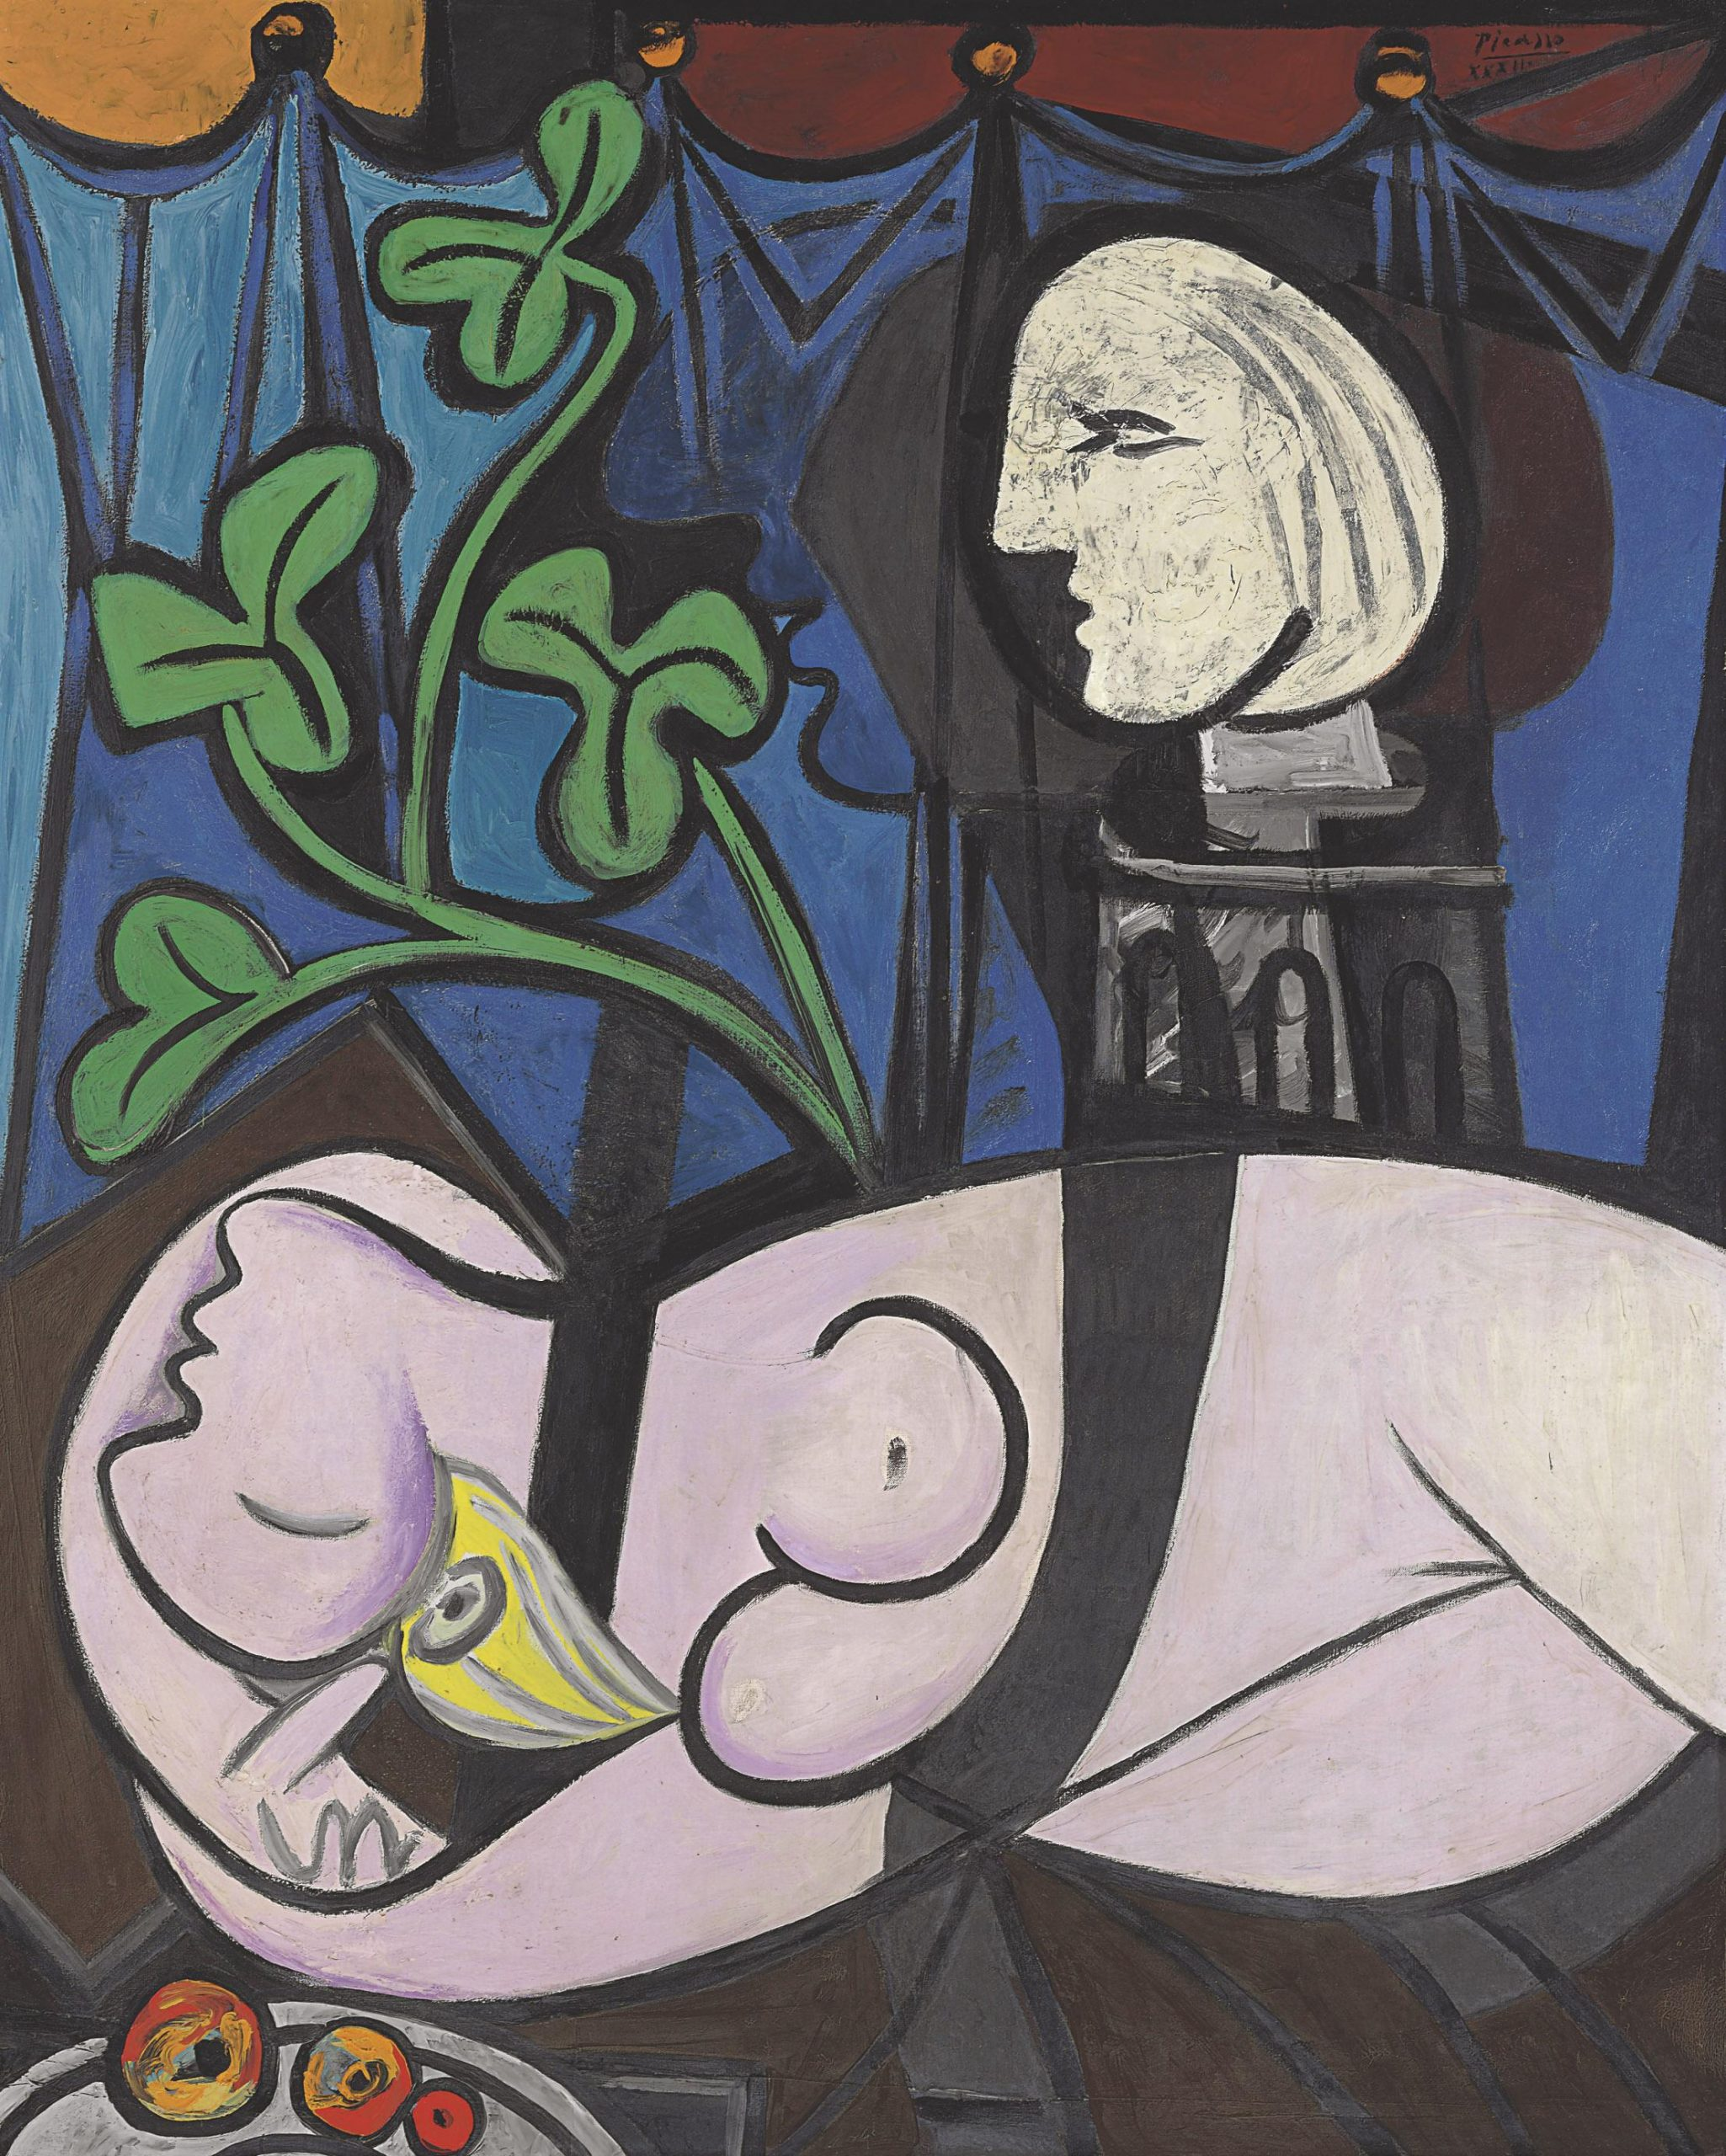 Pablo Picasso, Nude, Green Leaves and Bust, 1932